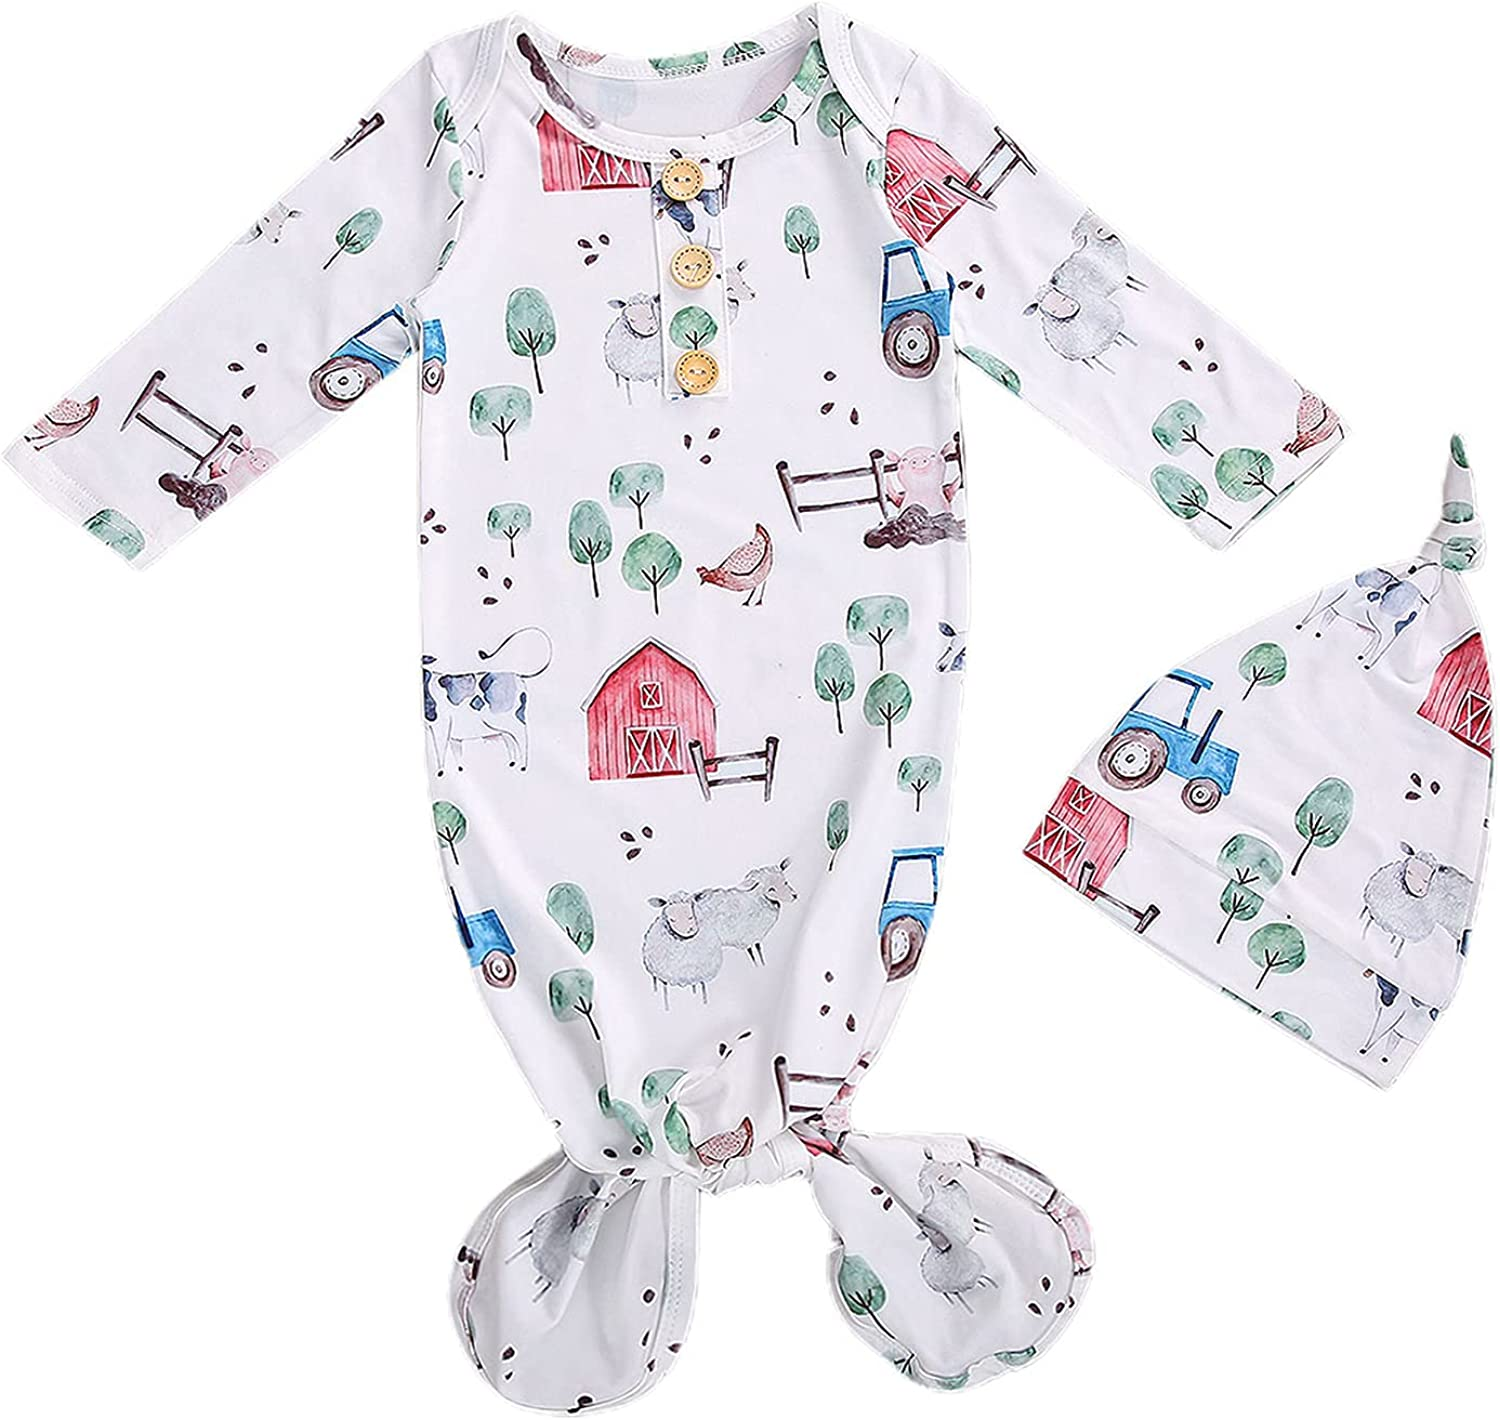 Unisex Infant Baby Gown Sleeping Bag Newborn Boy Girl Knotted Sleeper Nighgown Pajamas Coming Home Outfits (C Cute Animal, 0-3 Months)